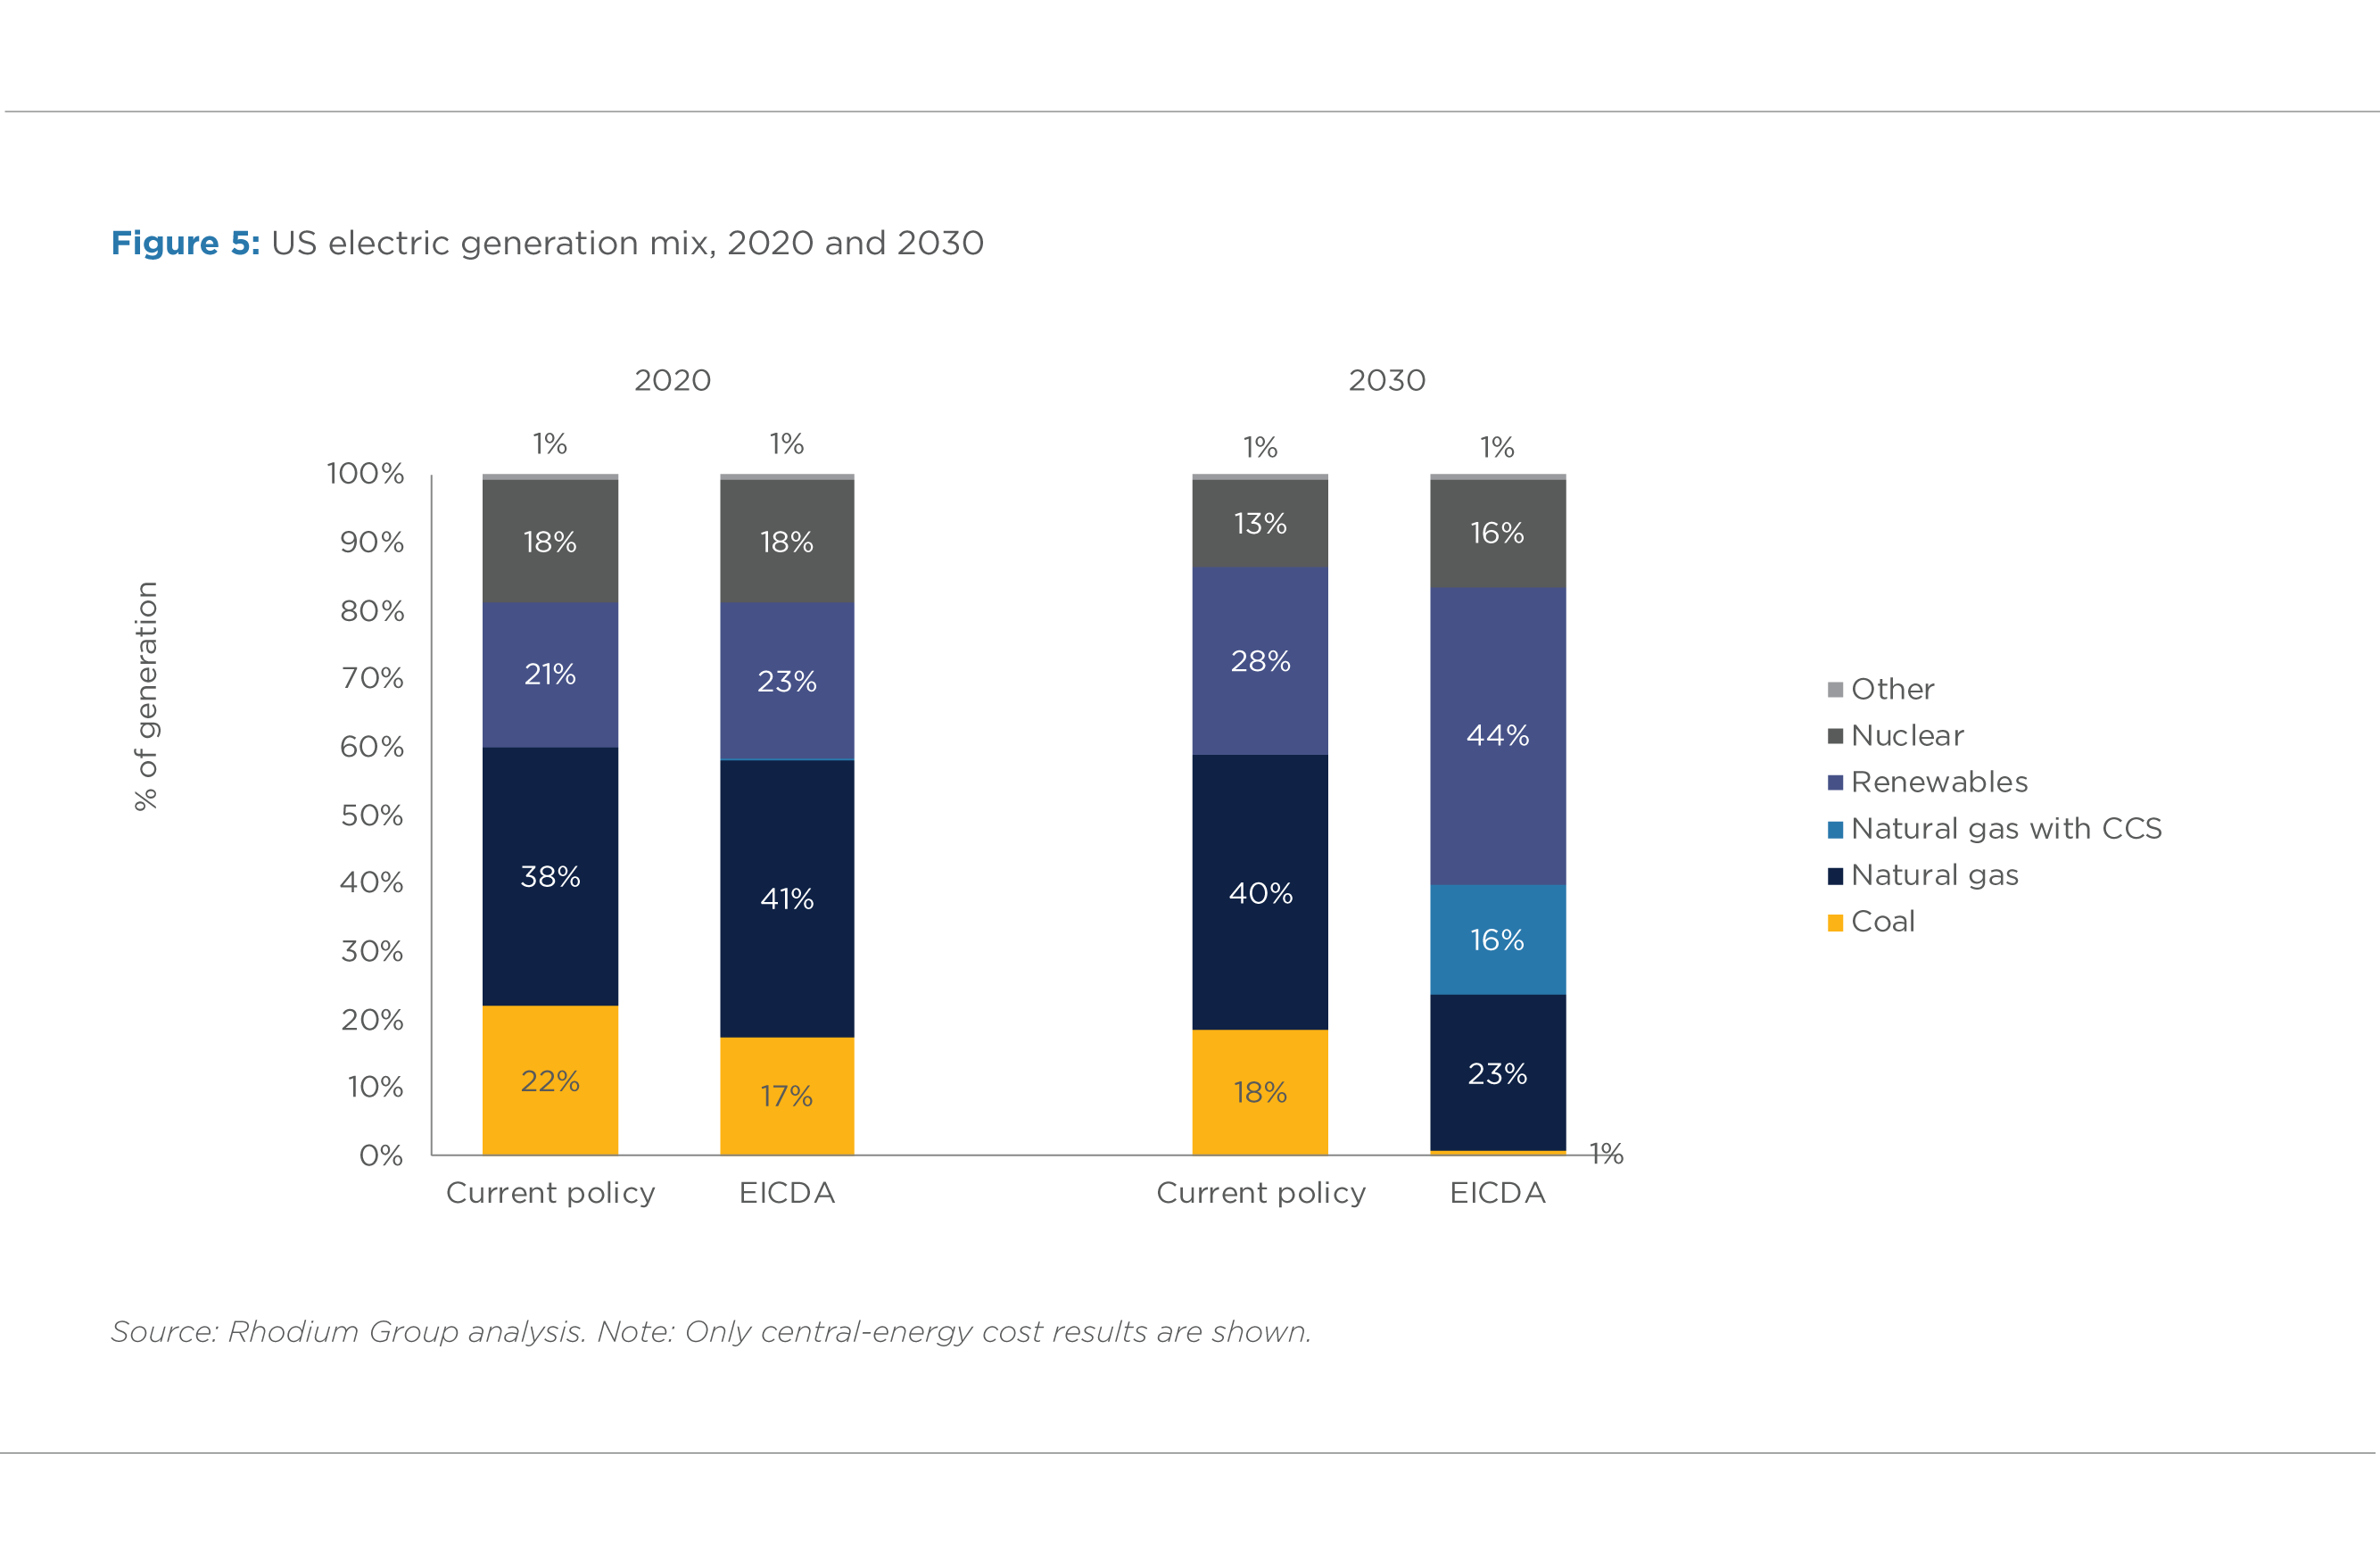 FIGURE 5. US ELECTRIC GENERATION MIX, 2020 AND 2030